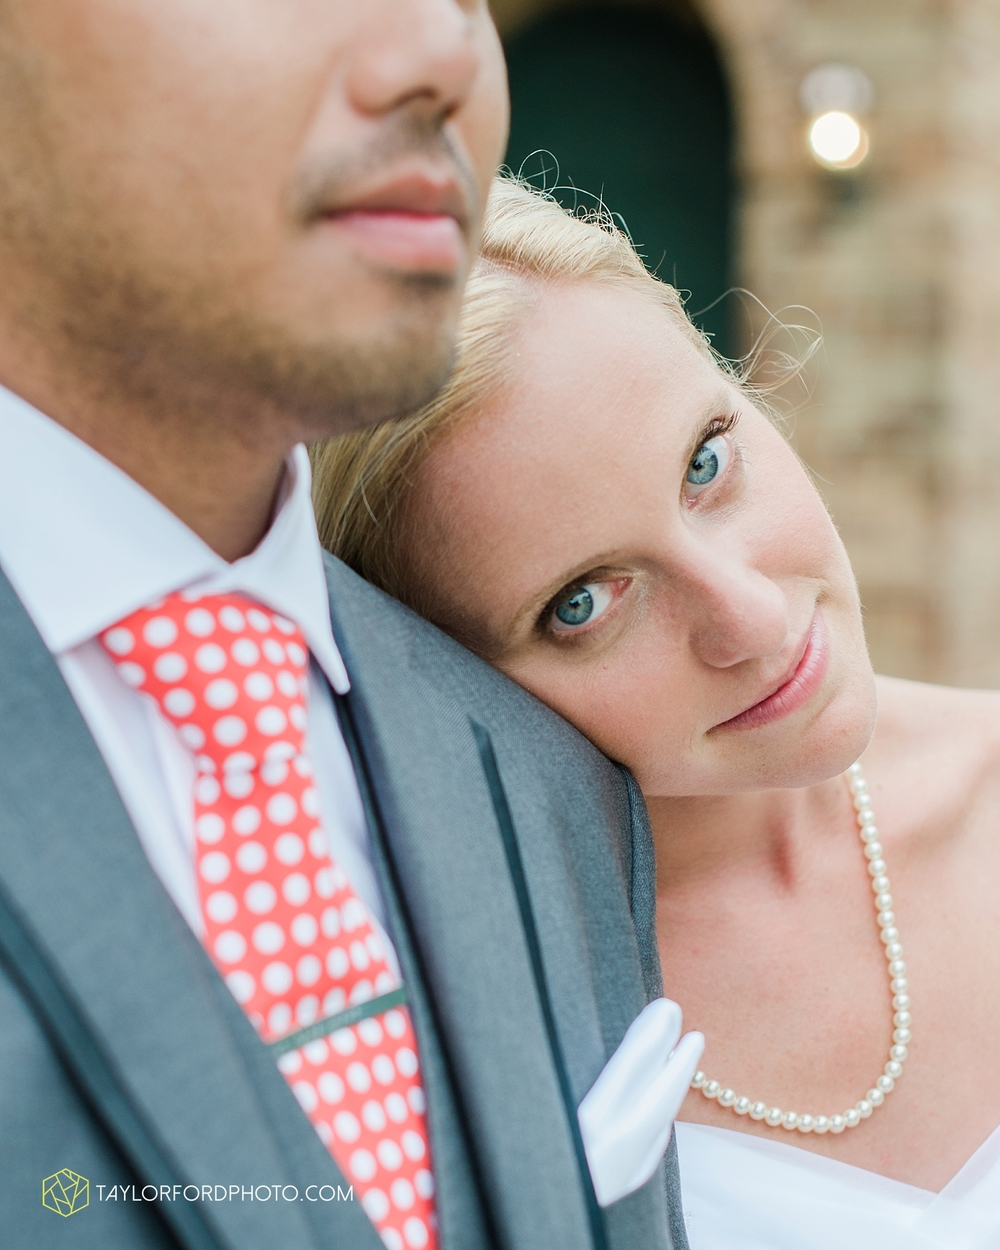 midwest_wedding_photography_taylor_ford_0505.jpg